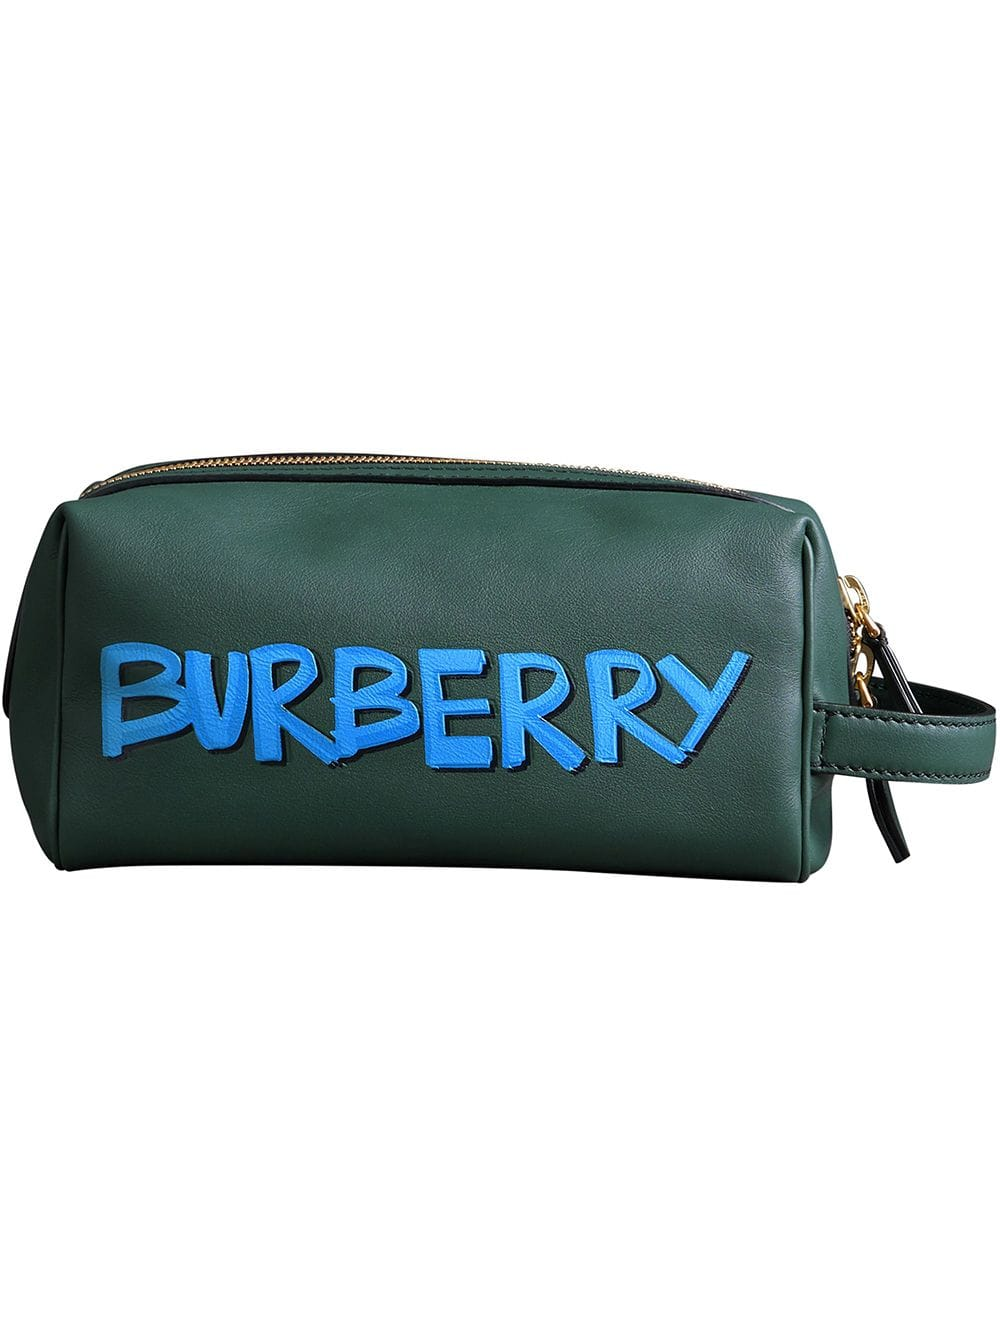 Burberry Mens Graffiti Print Leather Pouch In Green